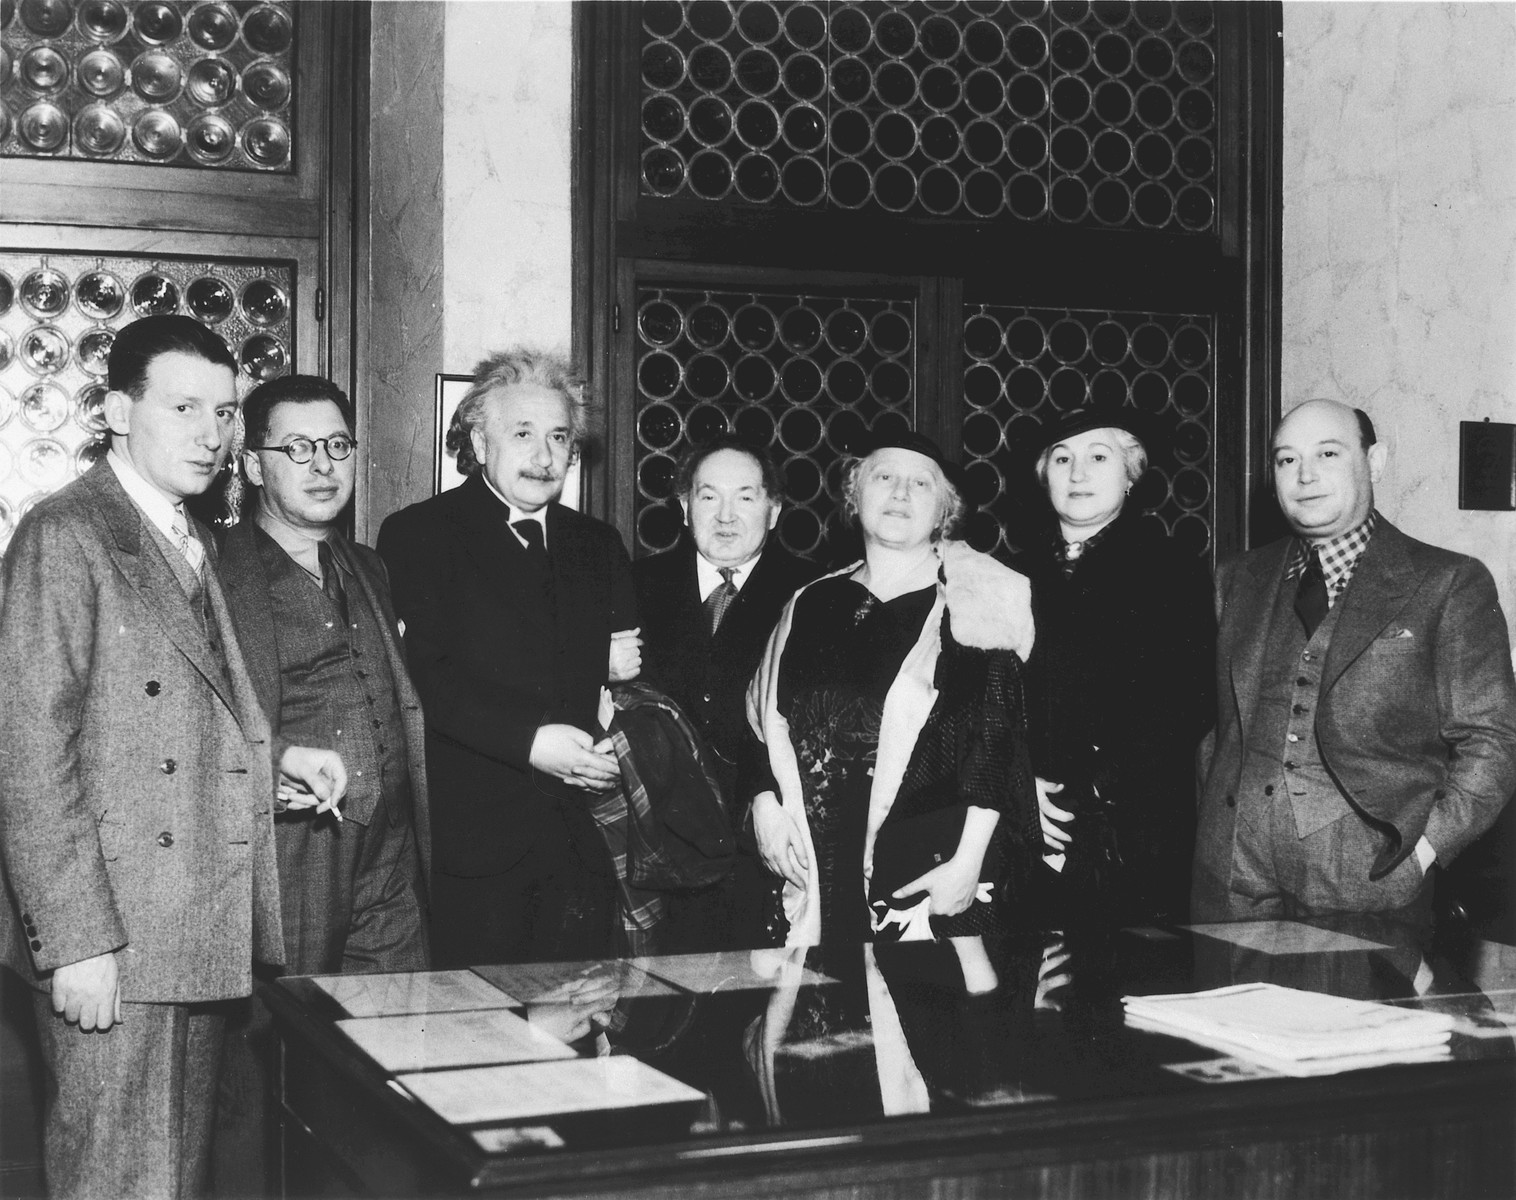 Albert Einstein meets with a group of American Zionists and scientists.  From left to right are Judah Leman, Leo Herrmann, Albert Einsein, Leopold Godowsky, Elsa Einstein, Mrs. Morros, and Borris Morros.